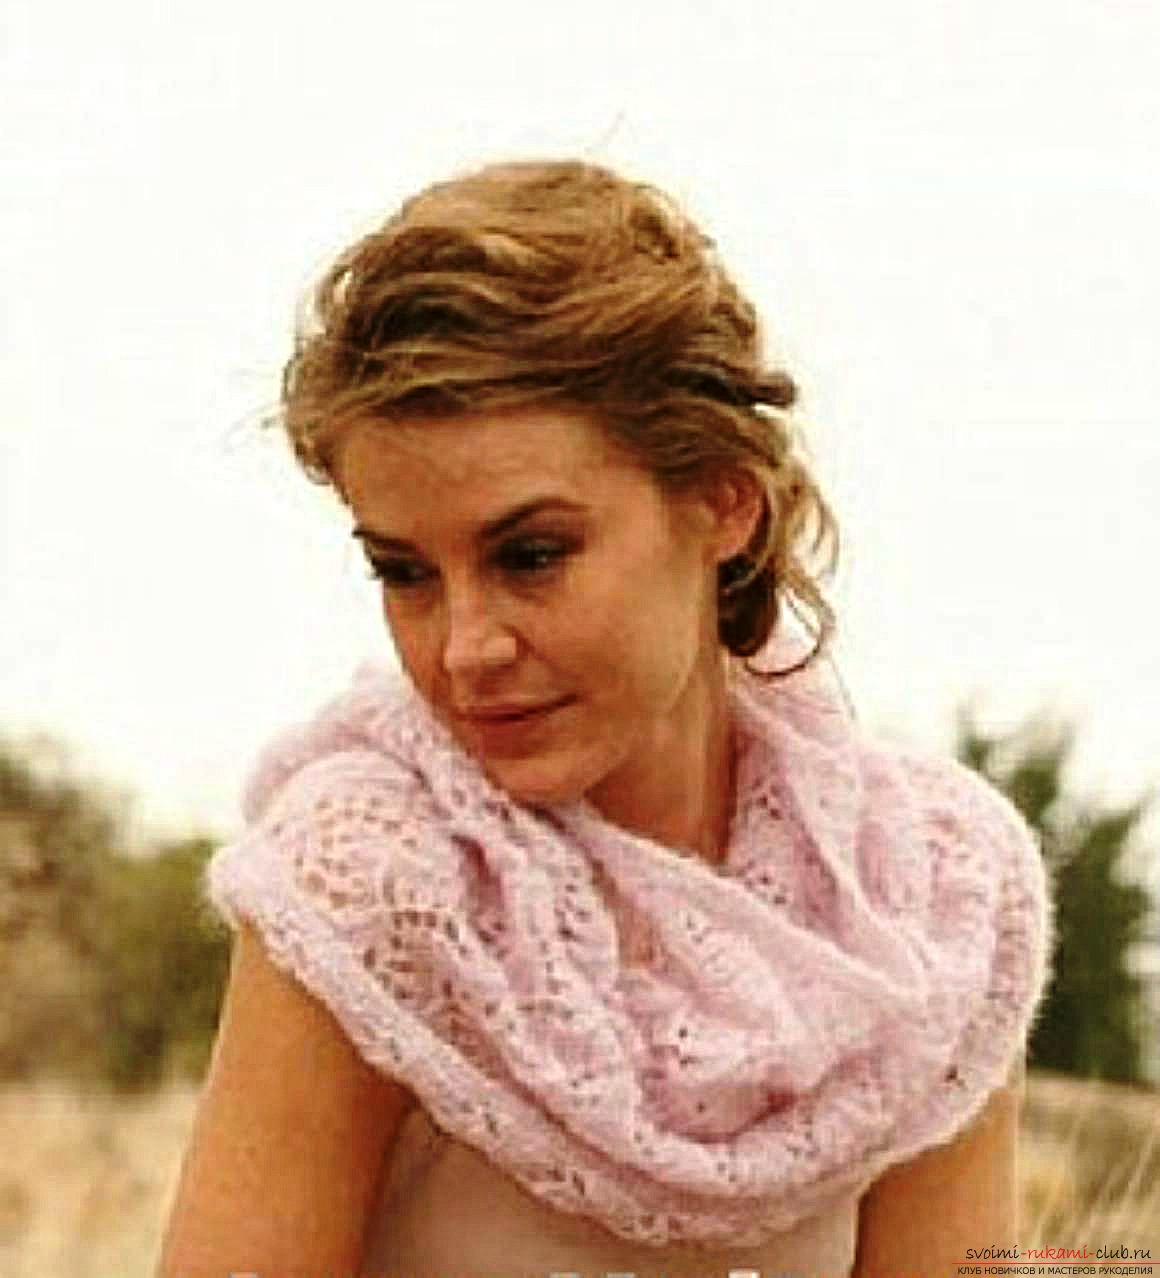 knitted knitting needles with a delicate openwork scarf-yoke. Photo №7